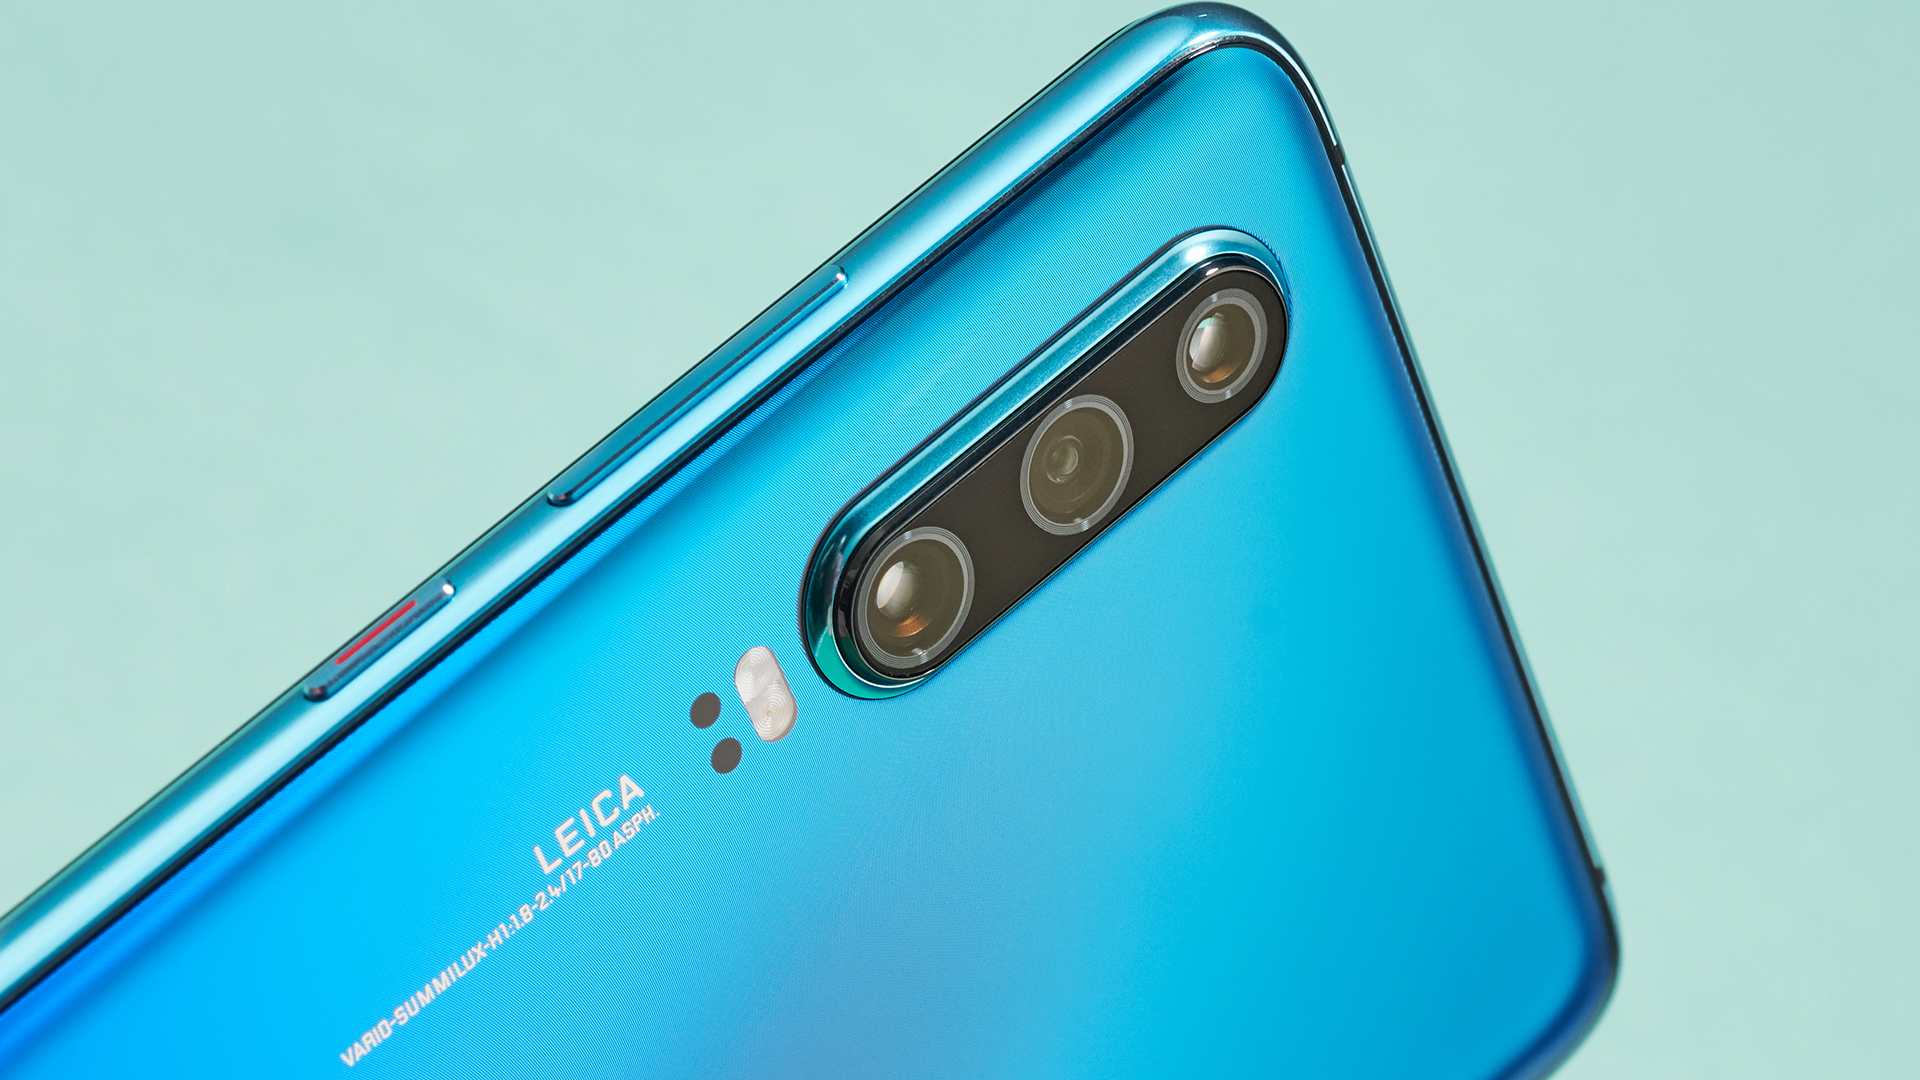 Forget Samsung Galaxy S11 New Huawei P40 Info And Images Have Leaked T3